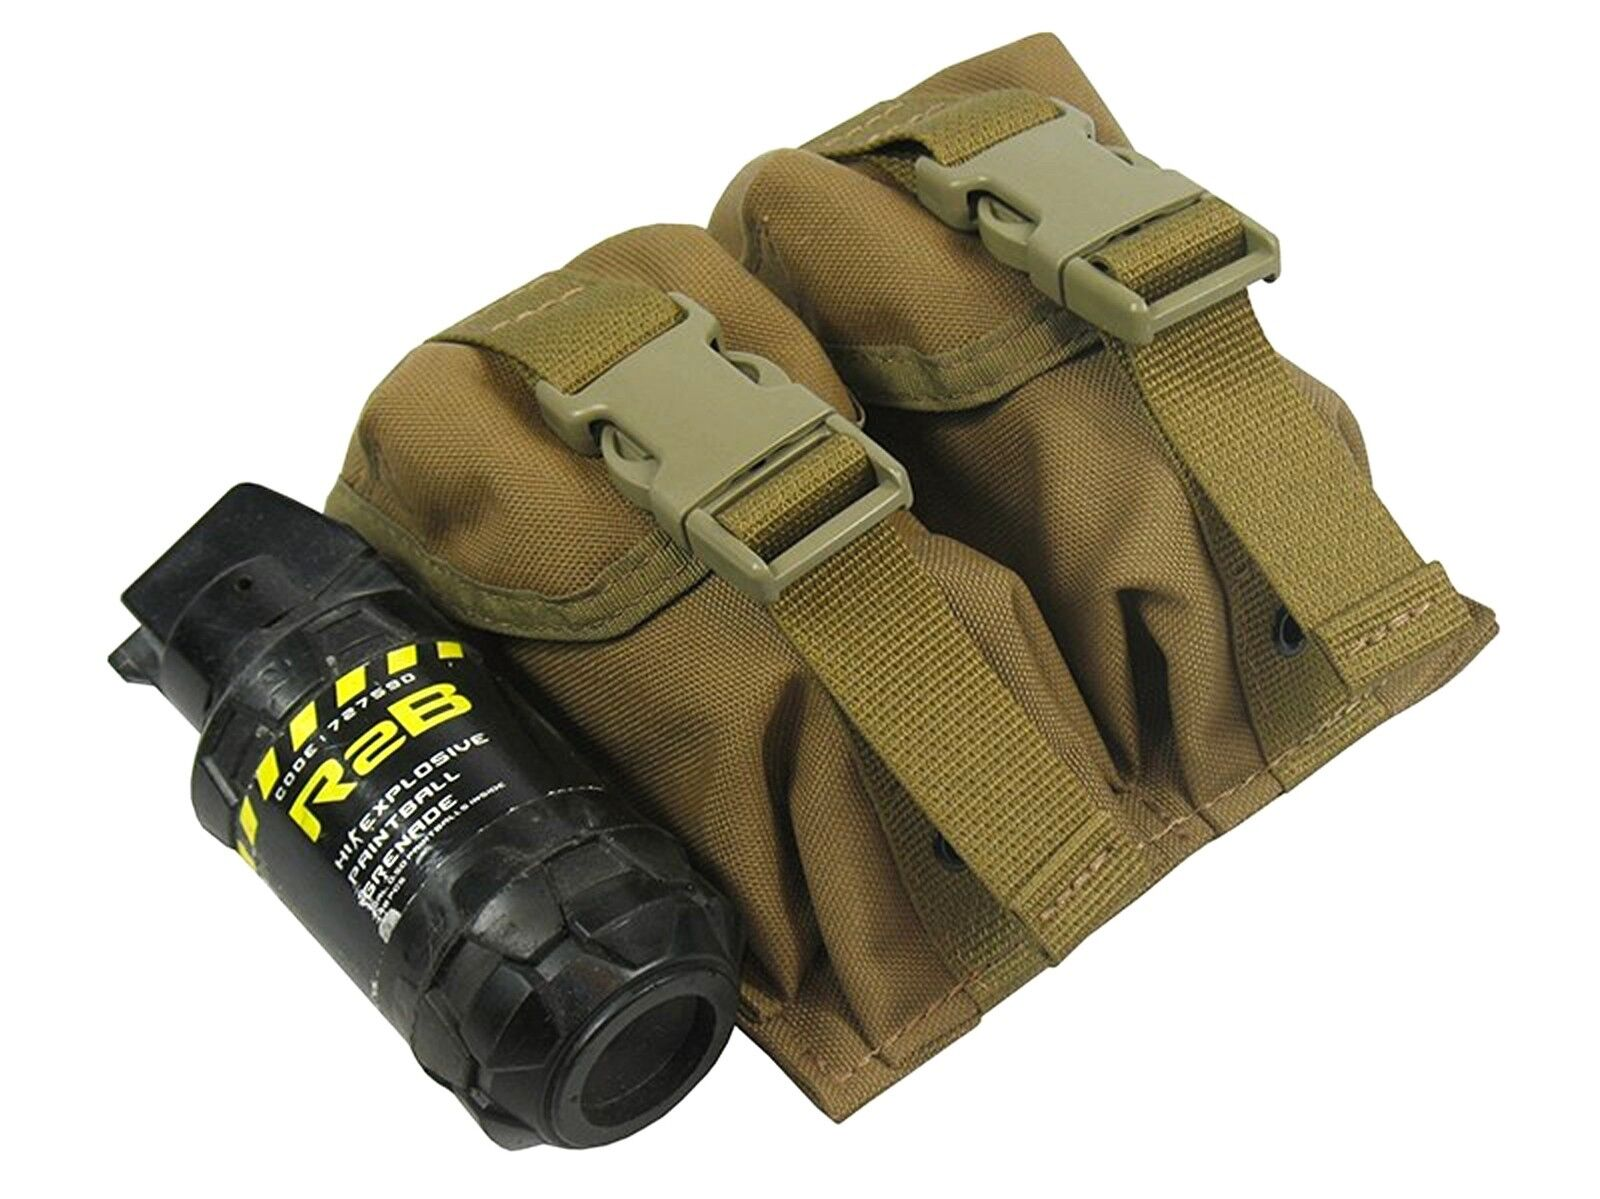 Pouch Case molle pals olive magazine grenade airsoft bag coyote brown Waterproof